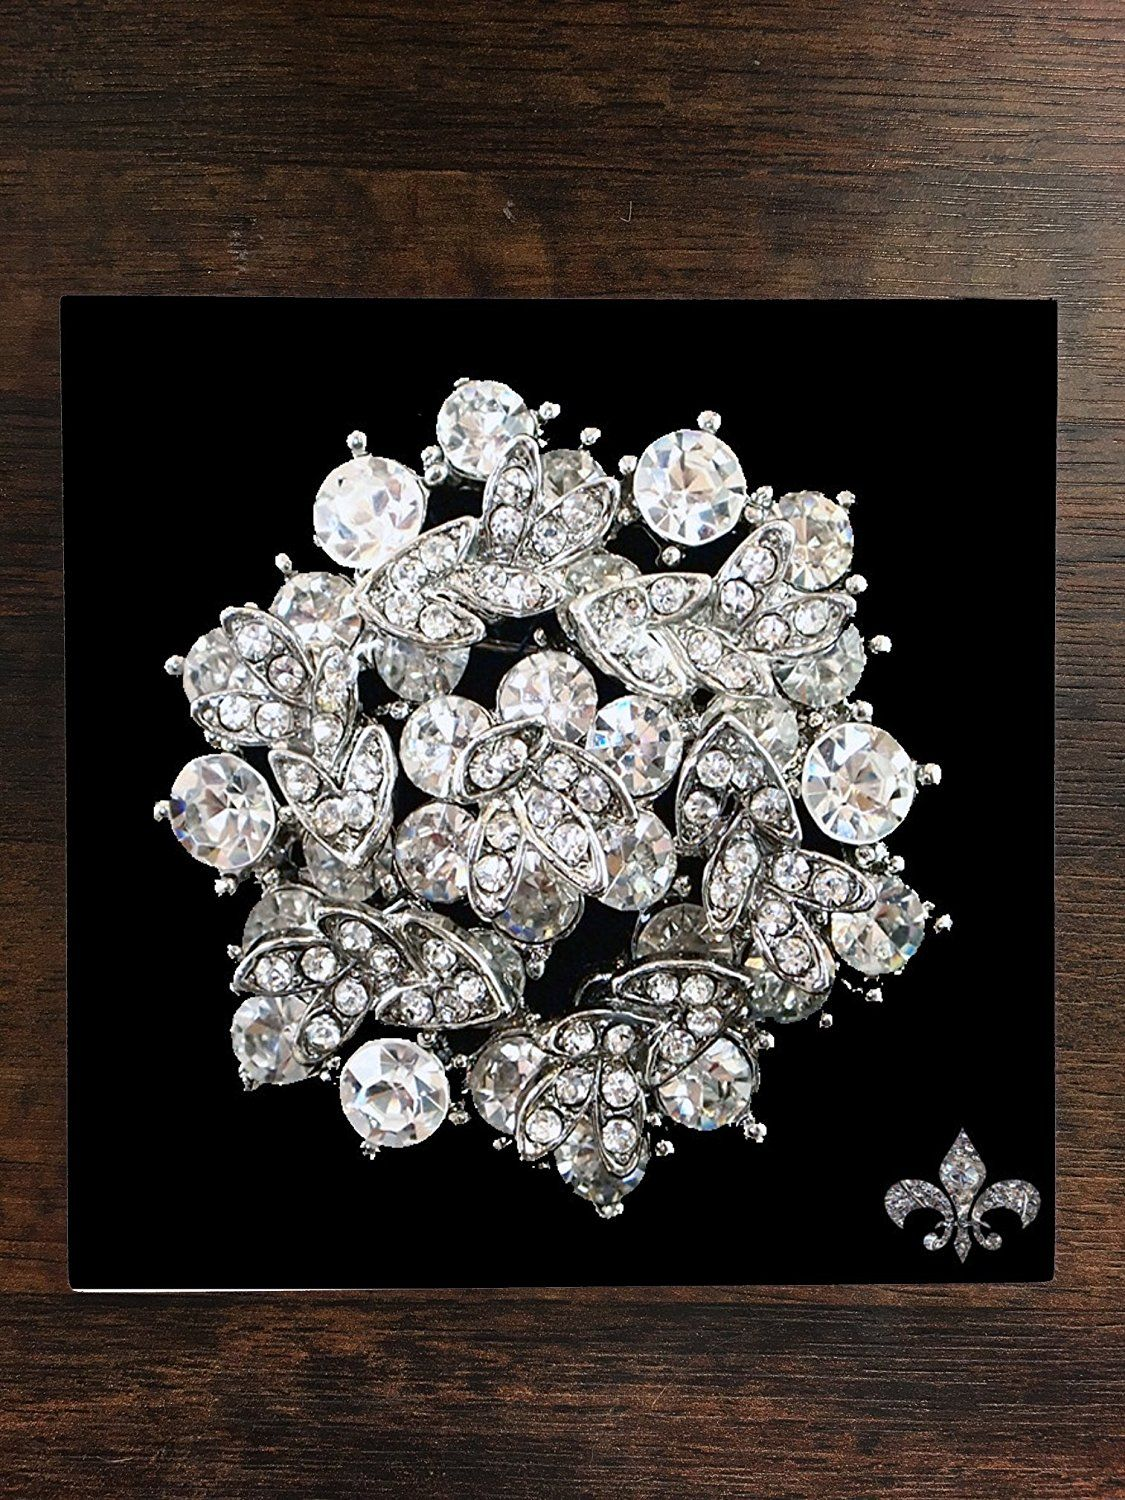 Rhinestone Brooch Pin Crystal Brooch Design Print Image